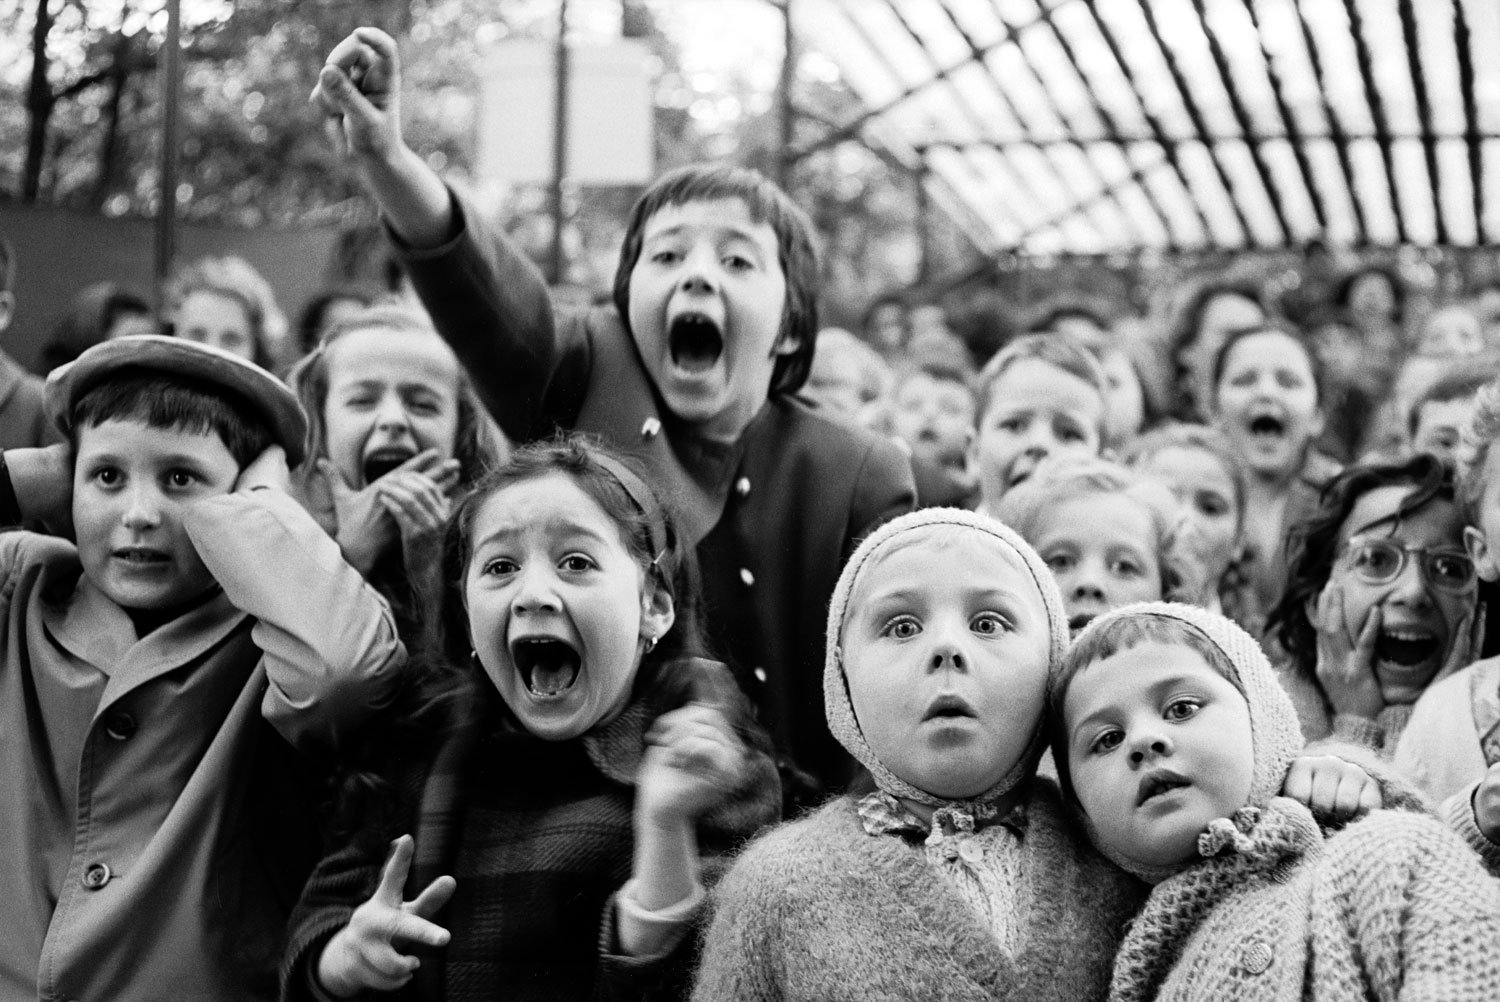 Puppet show on the streets of Paris, Time Magazine, 1963